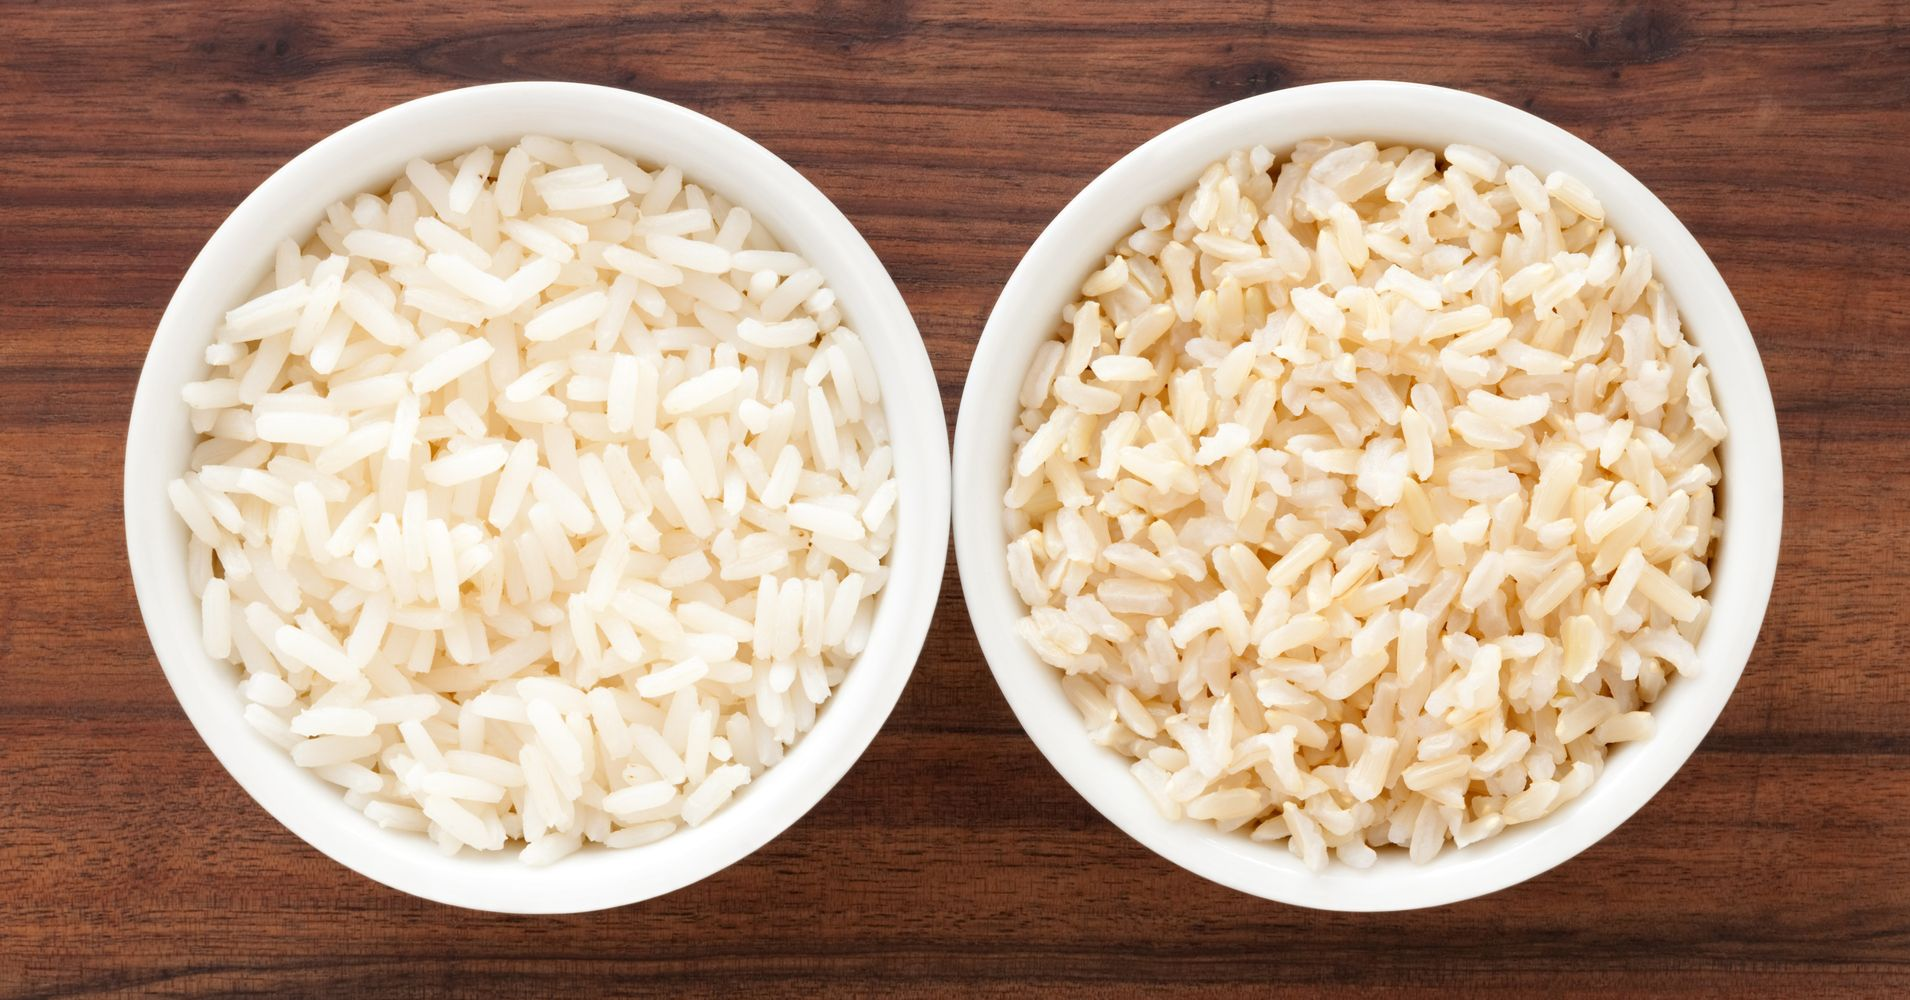 how to know if cooked brown rice is spoiled